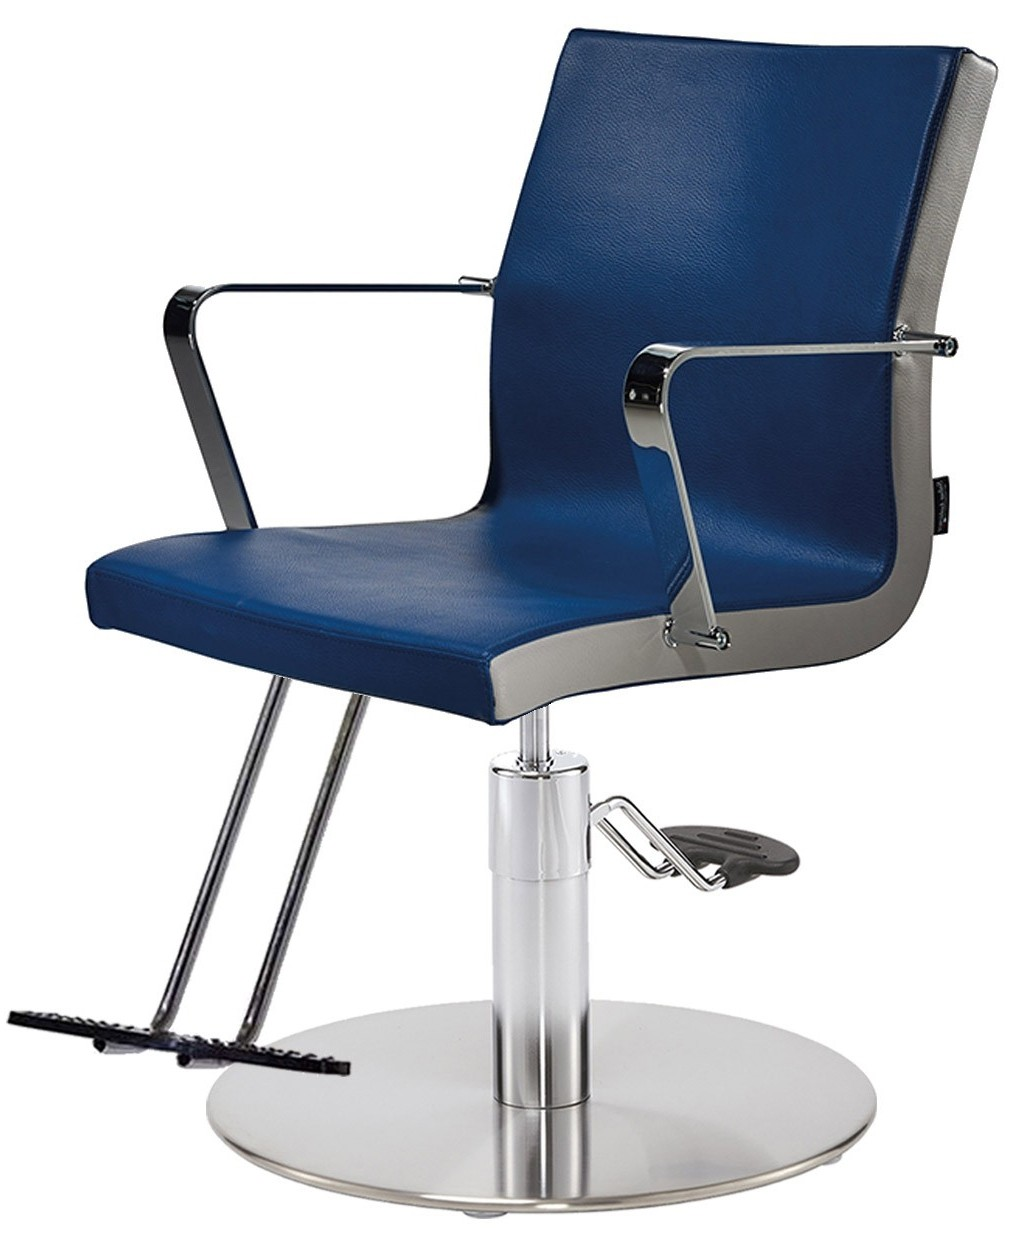 SH-540 Melissa Styling Chair